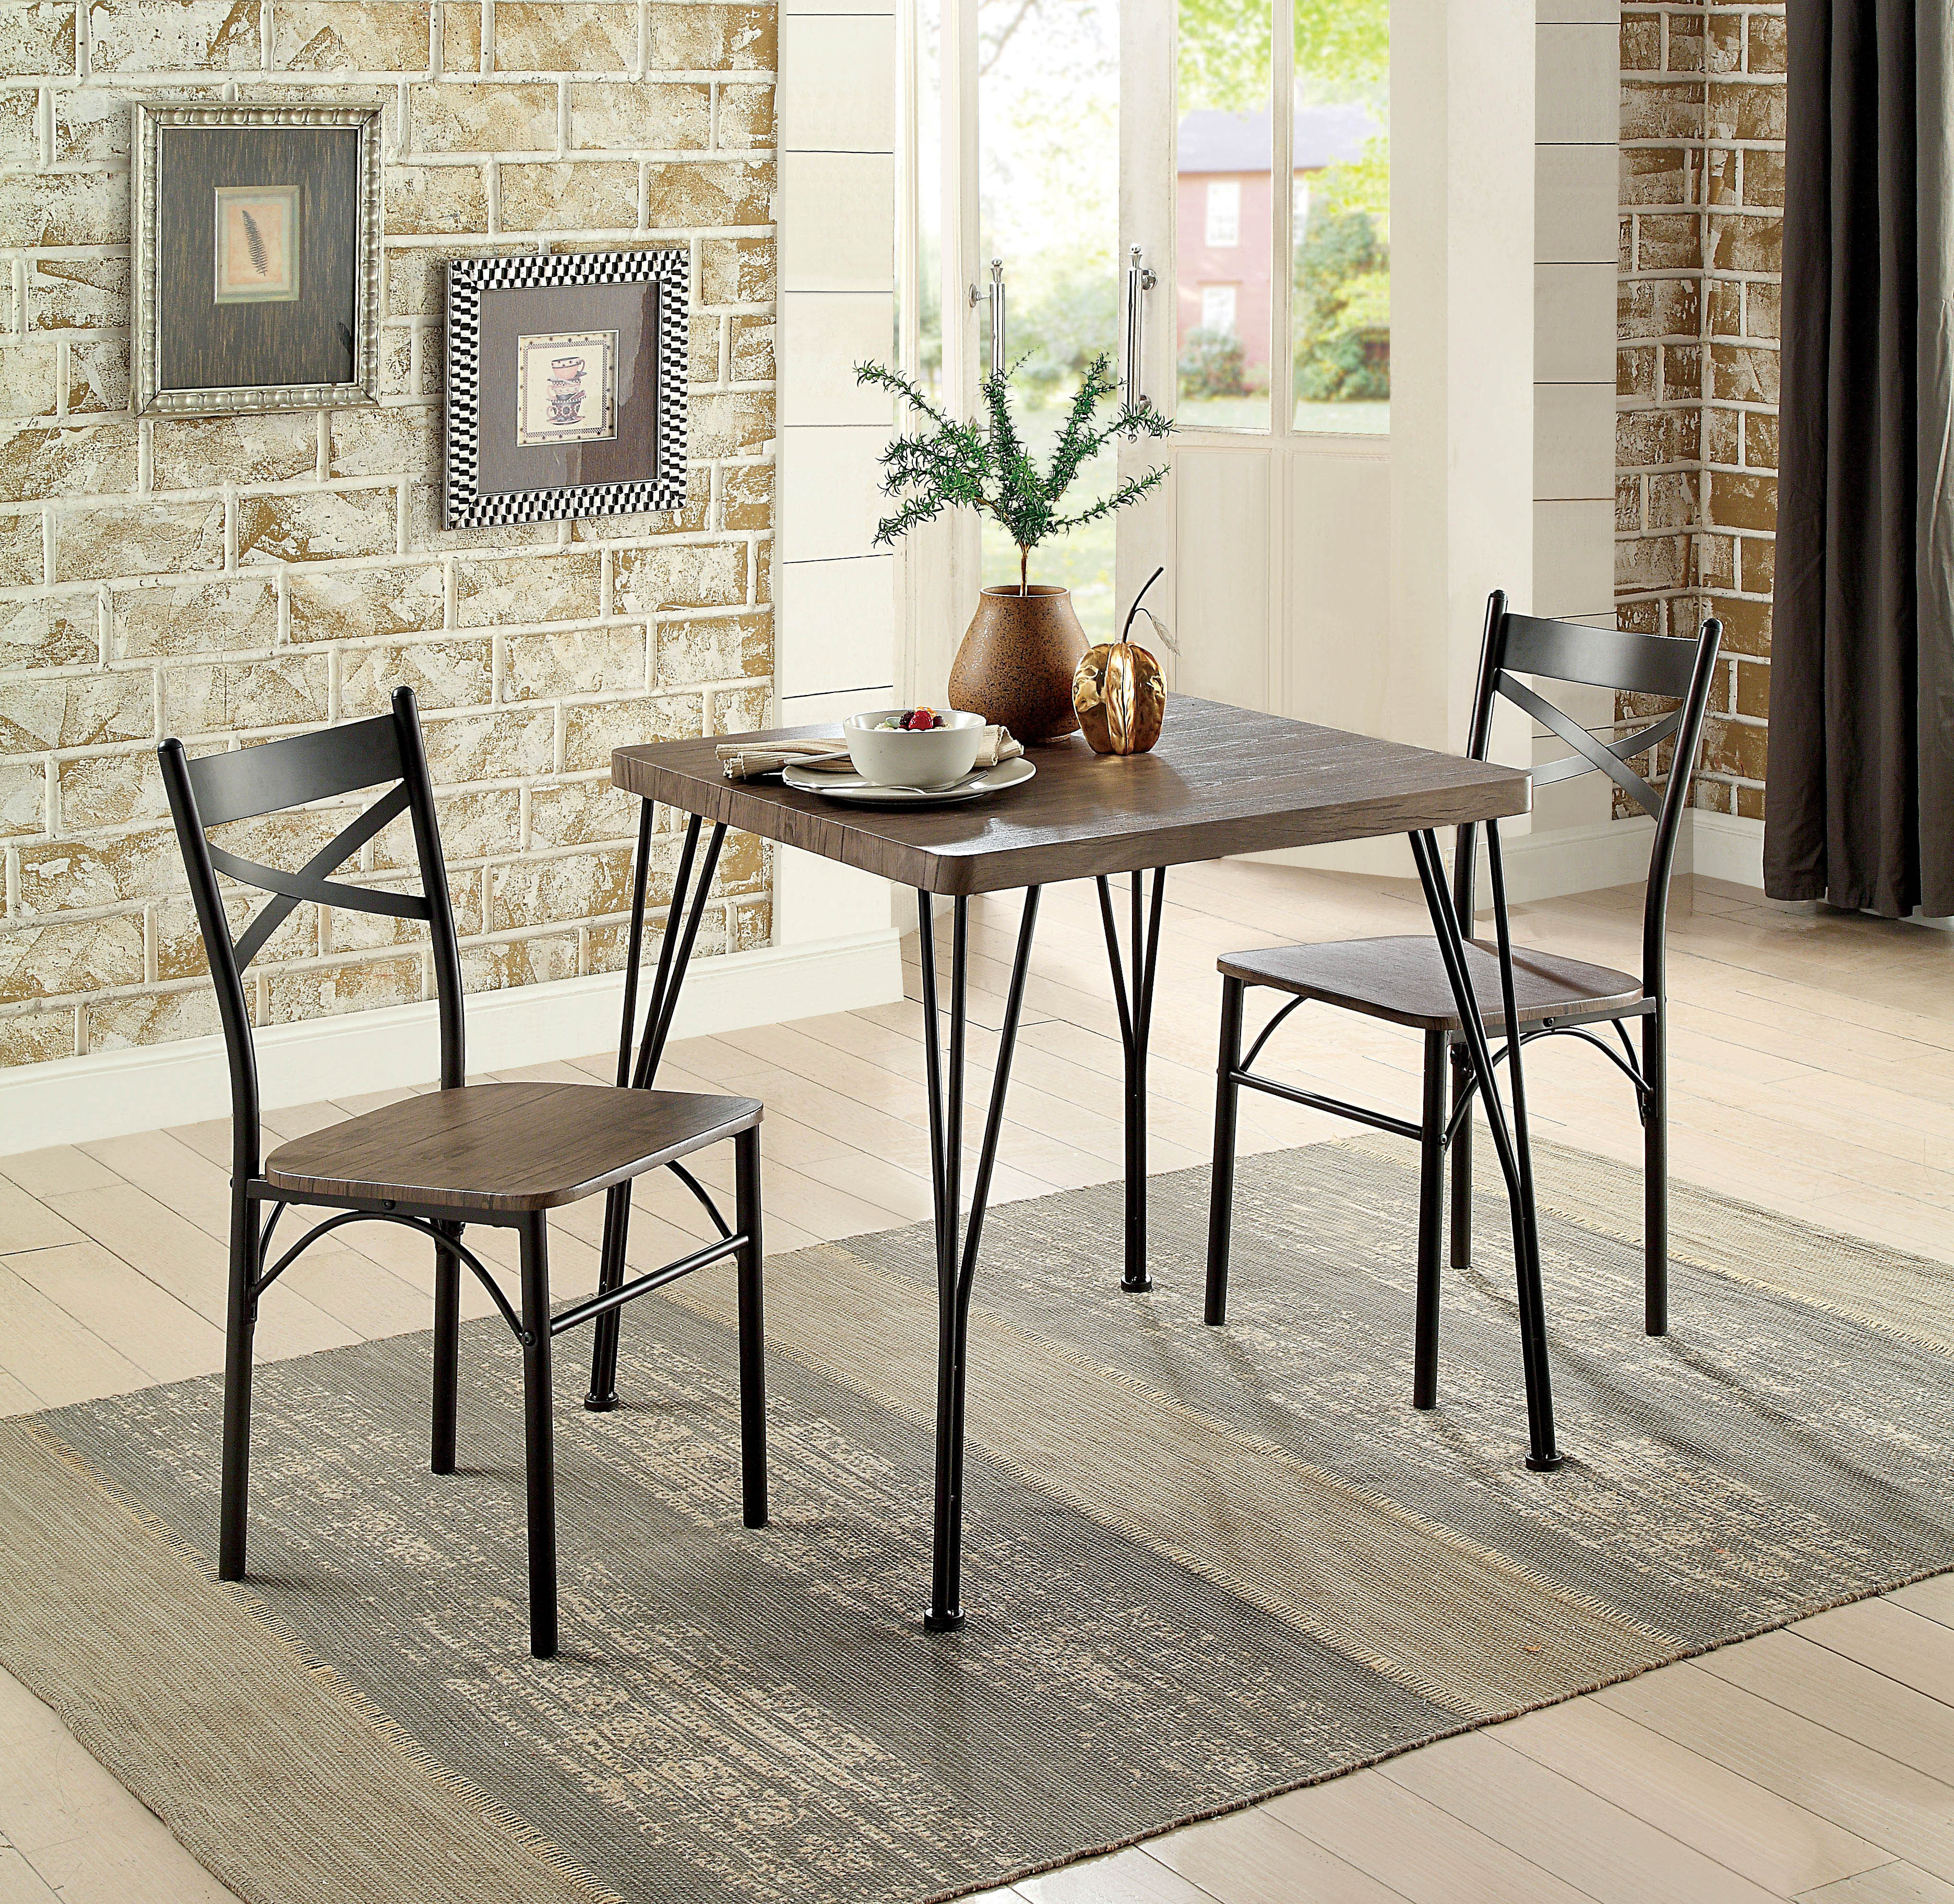 Widely Used Laurel Foundry Modern Farmhouse Guertin 3 Piece Dining Set & Reviews Throughout Kinsler 3 Piece Bistro Sets (View 25 of 25)